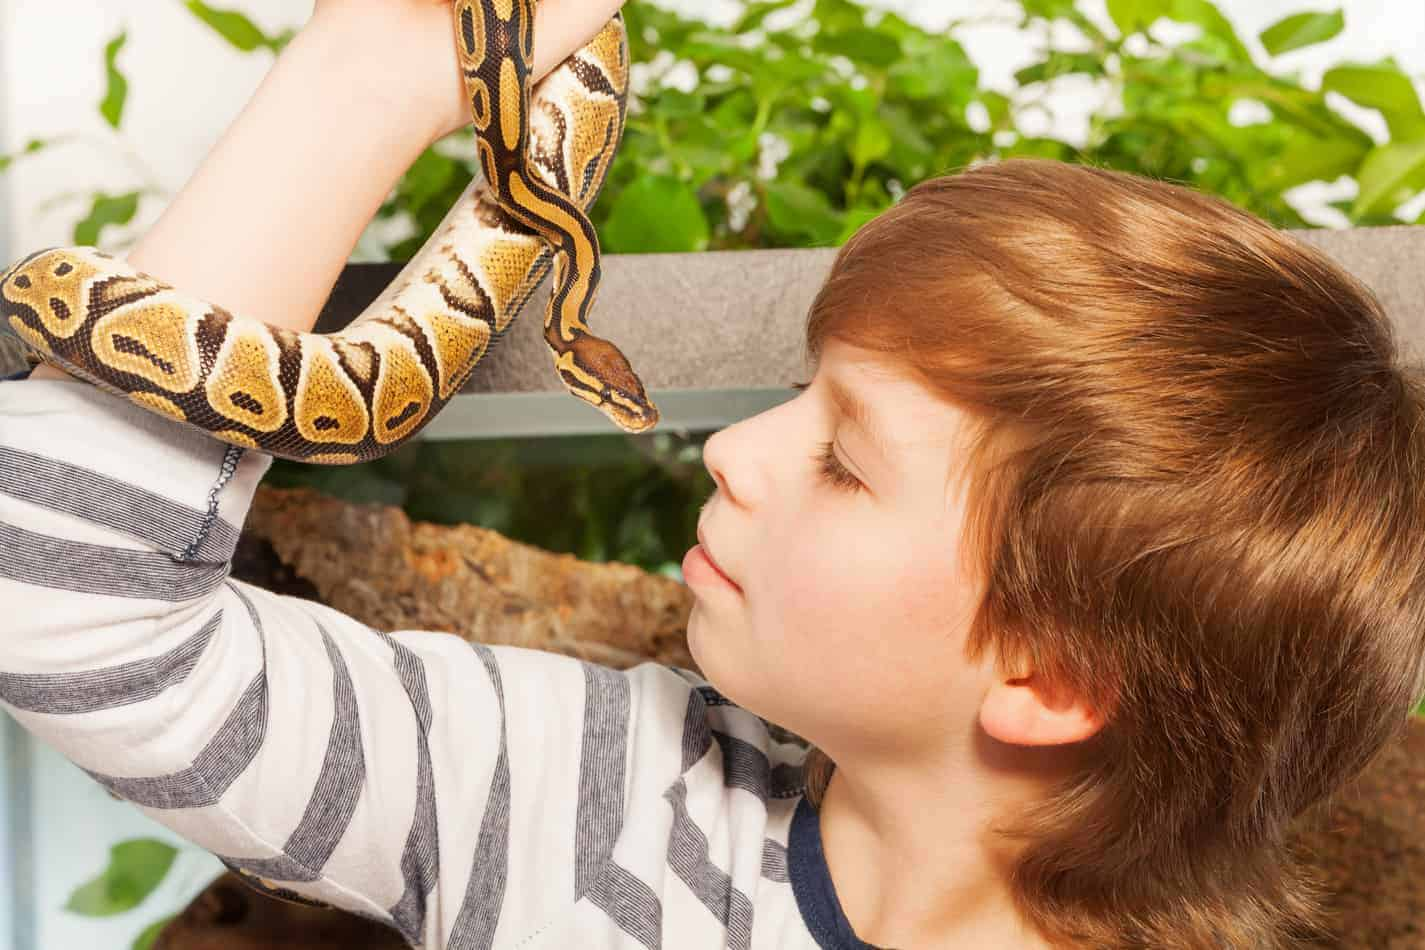 Can Pet Snakes Recognize Their Owners?